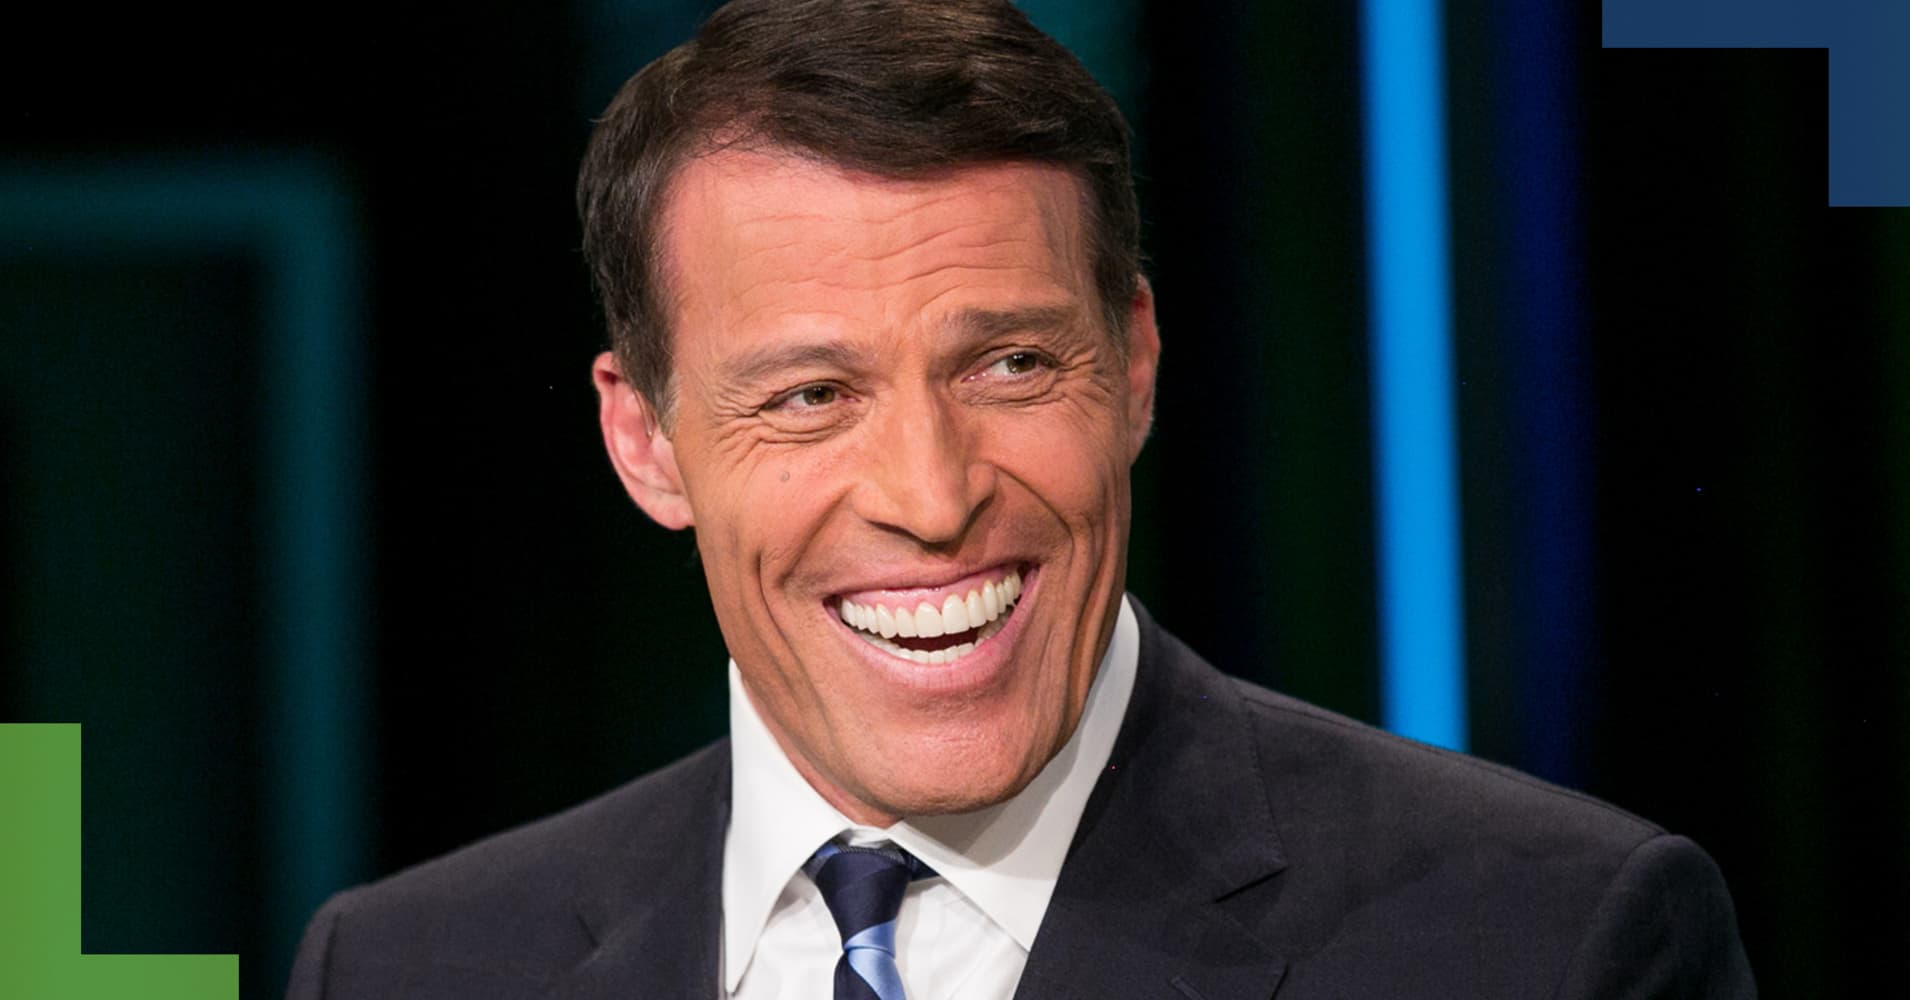 Tony Robbins' top 3 book recommendations: 'Readers are leaders'